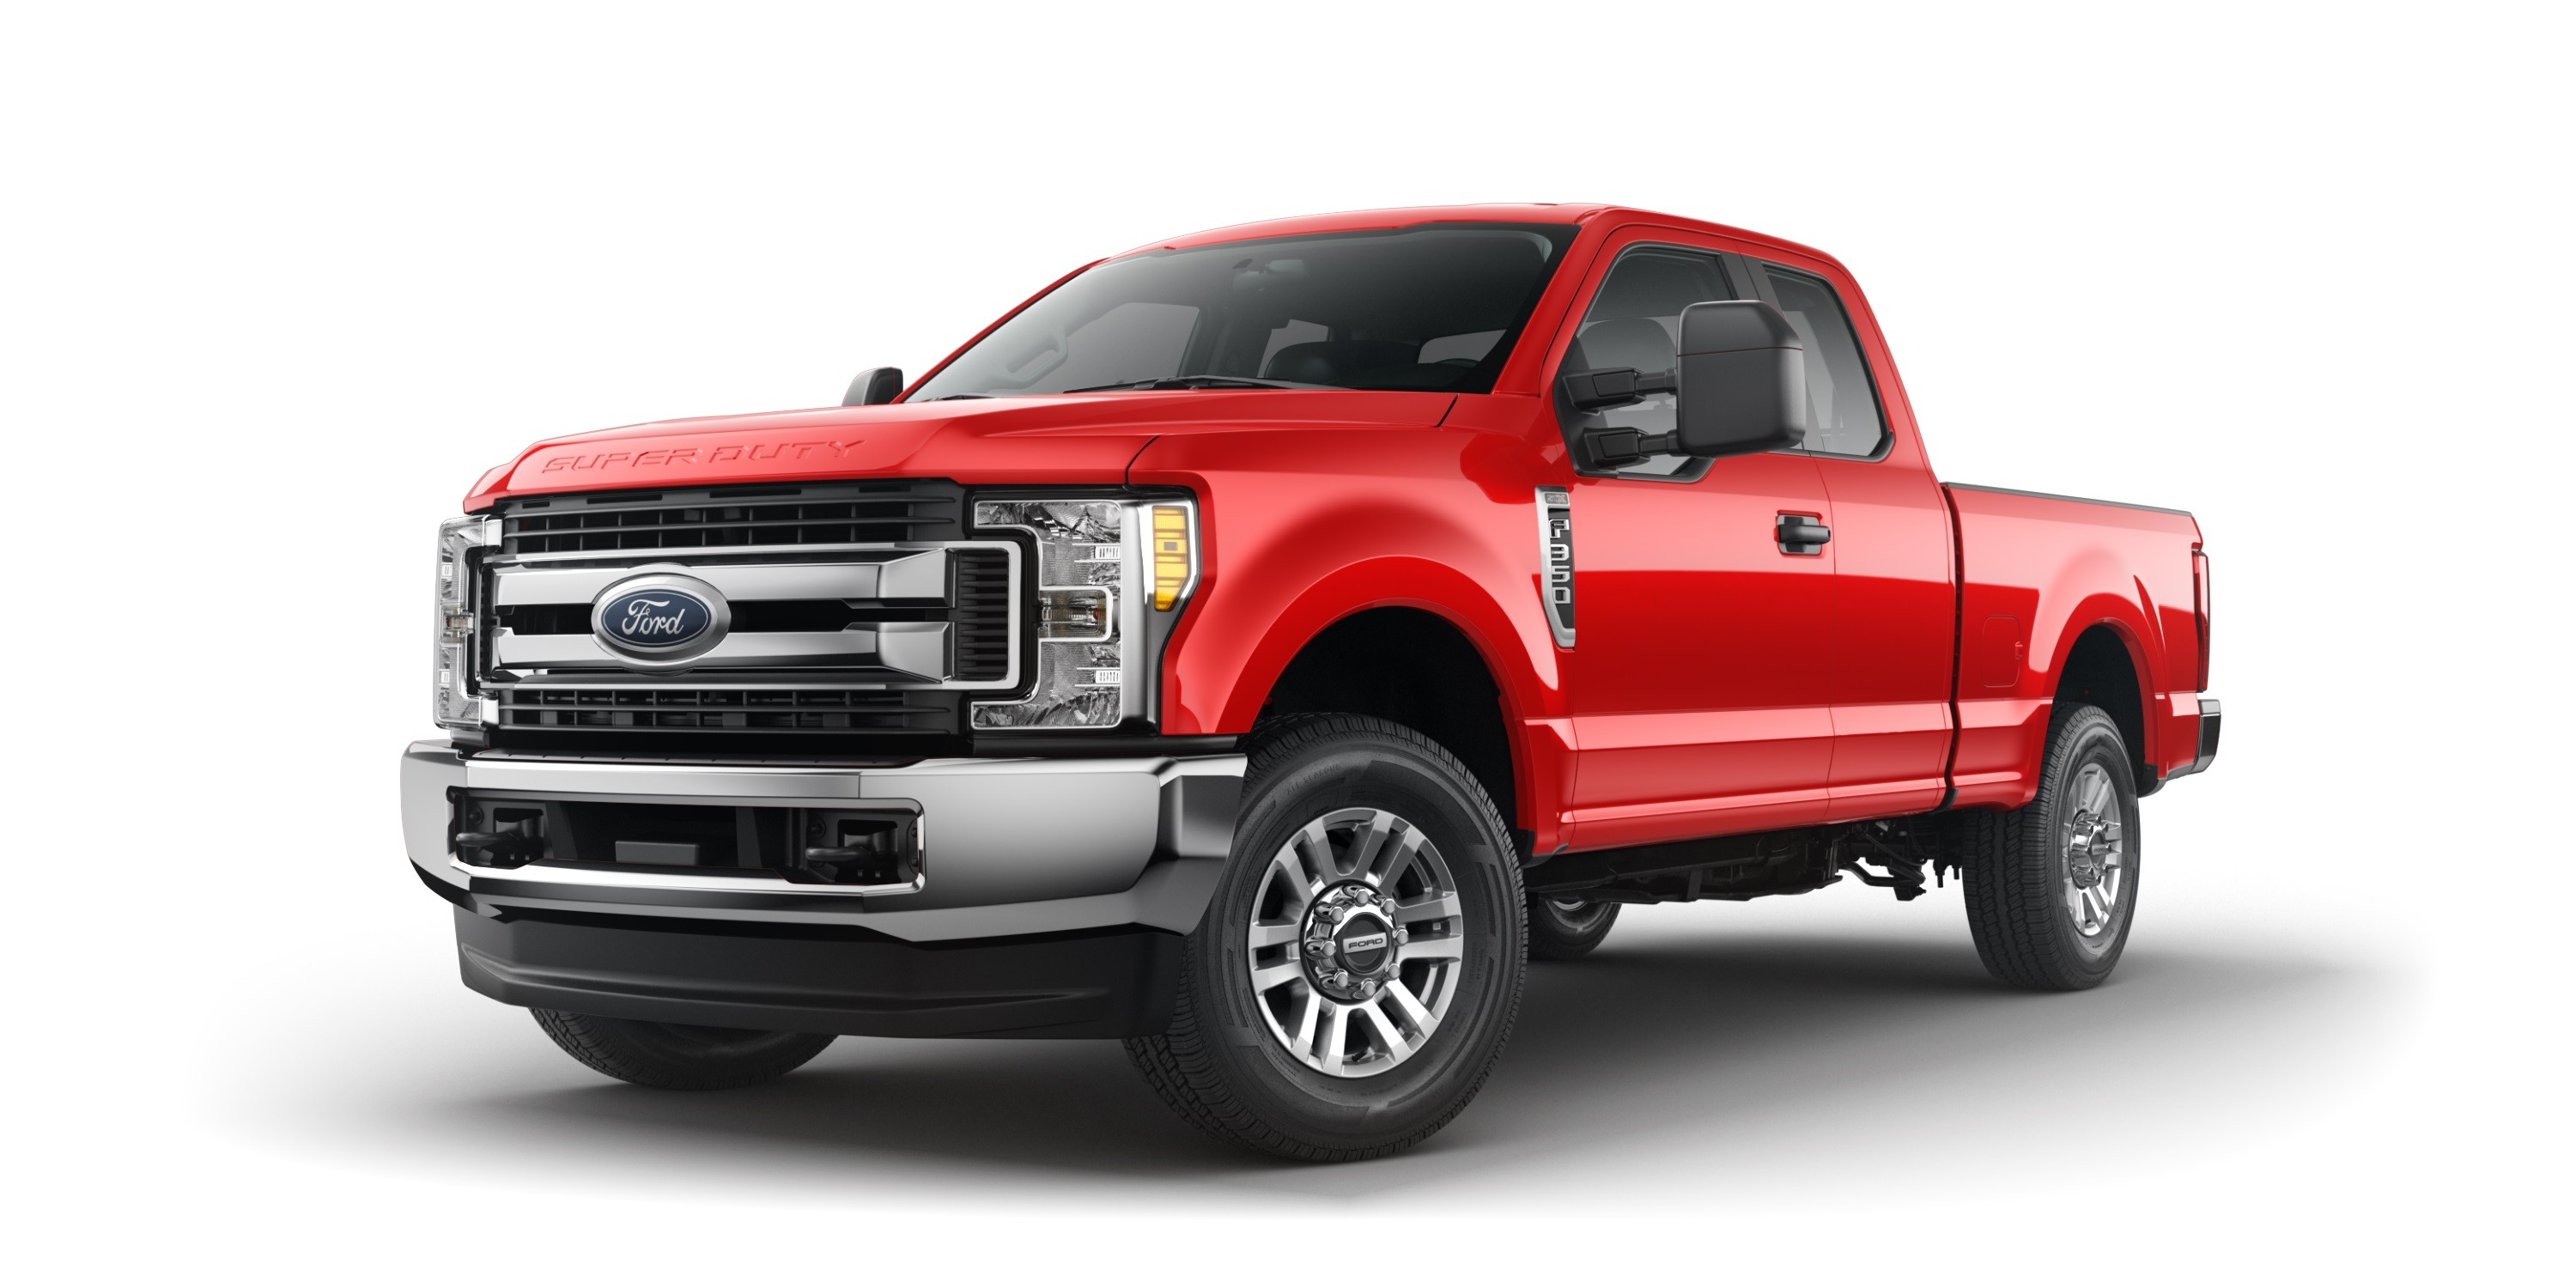 ford f series stx returns for my 2017 now available on super duty pickup trucks autoevolution. Black Bedroom Furniture Sets. Home Design Ideas